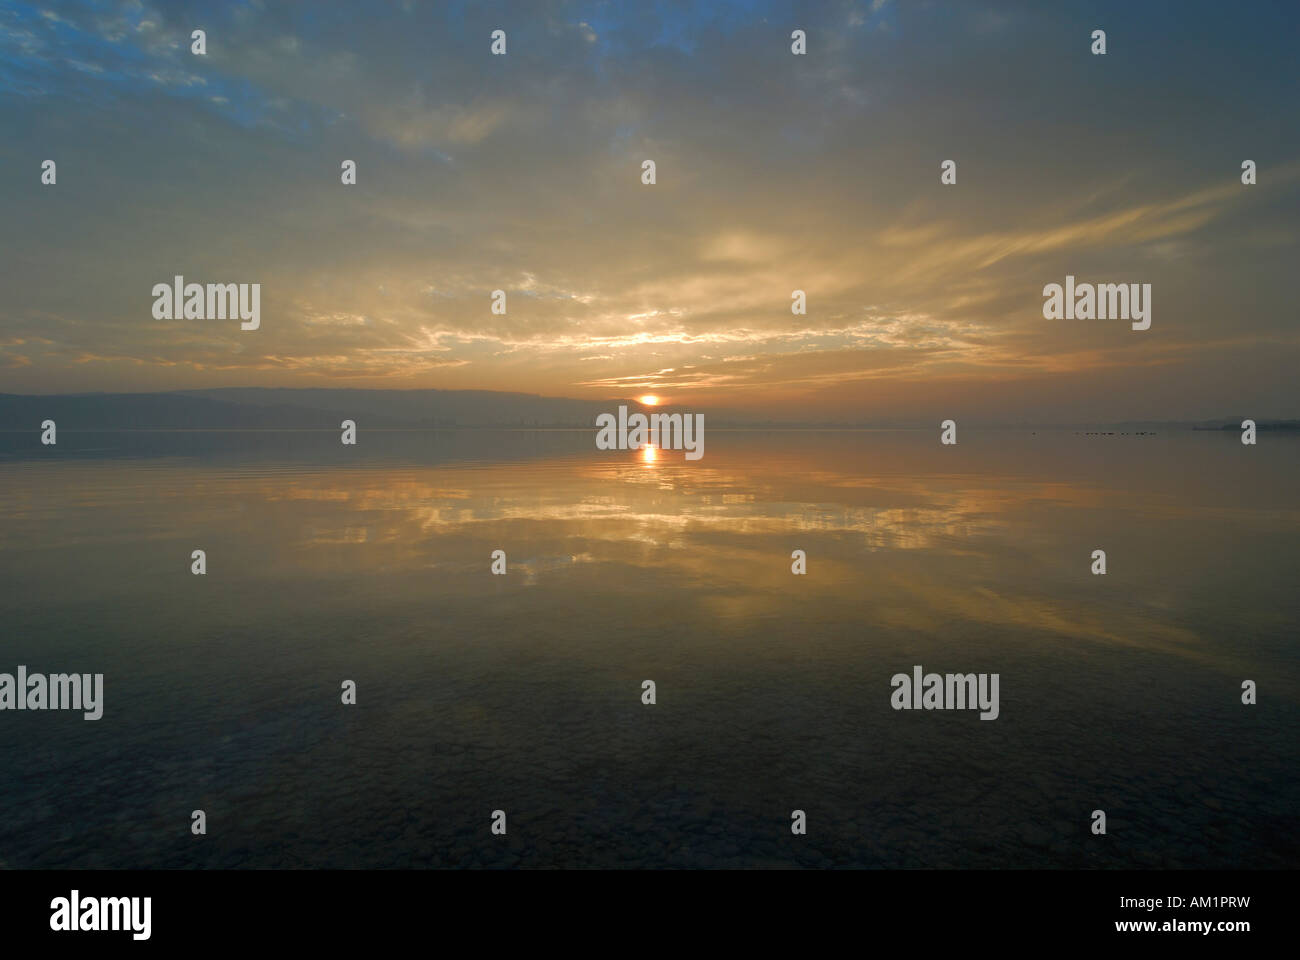 Sunset over the lake of constance - Baden Wuerttemberg Germany Europe. - Stock Image